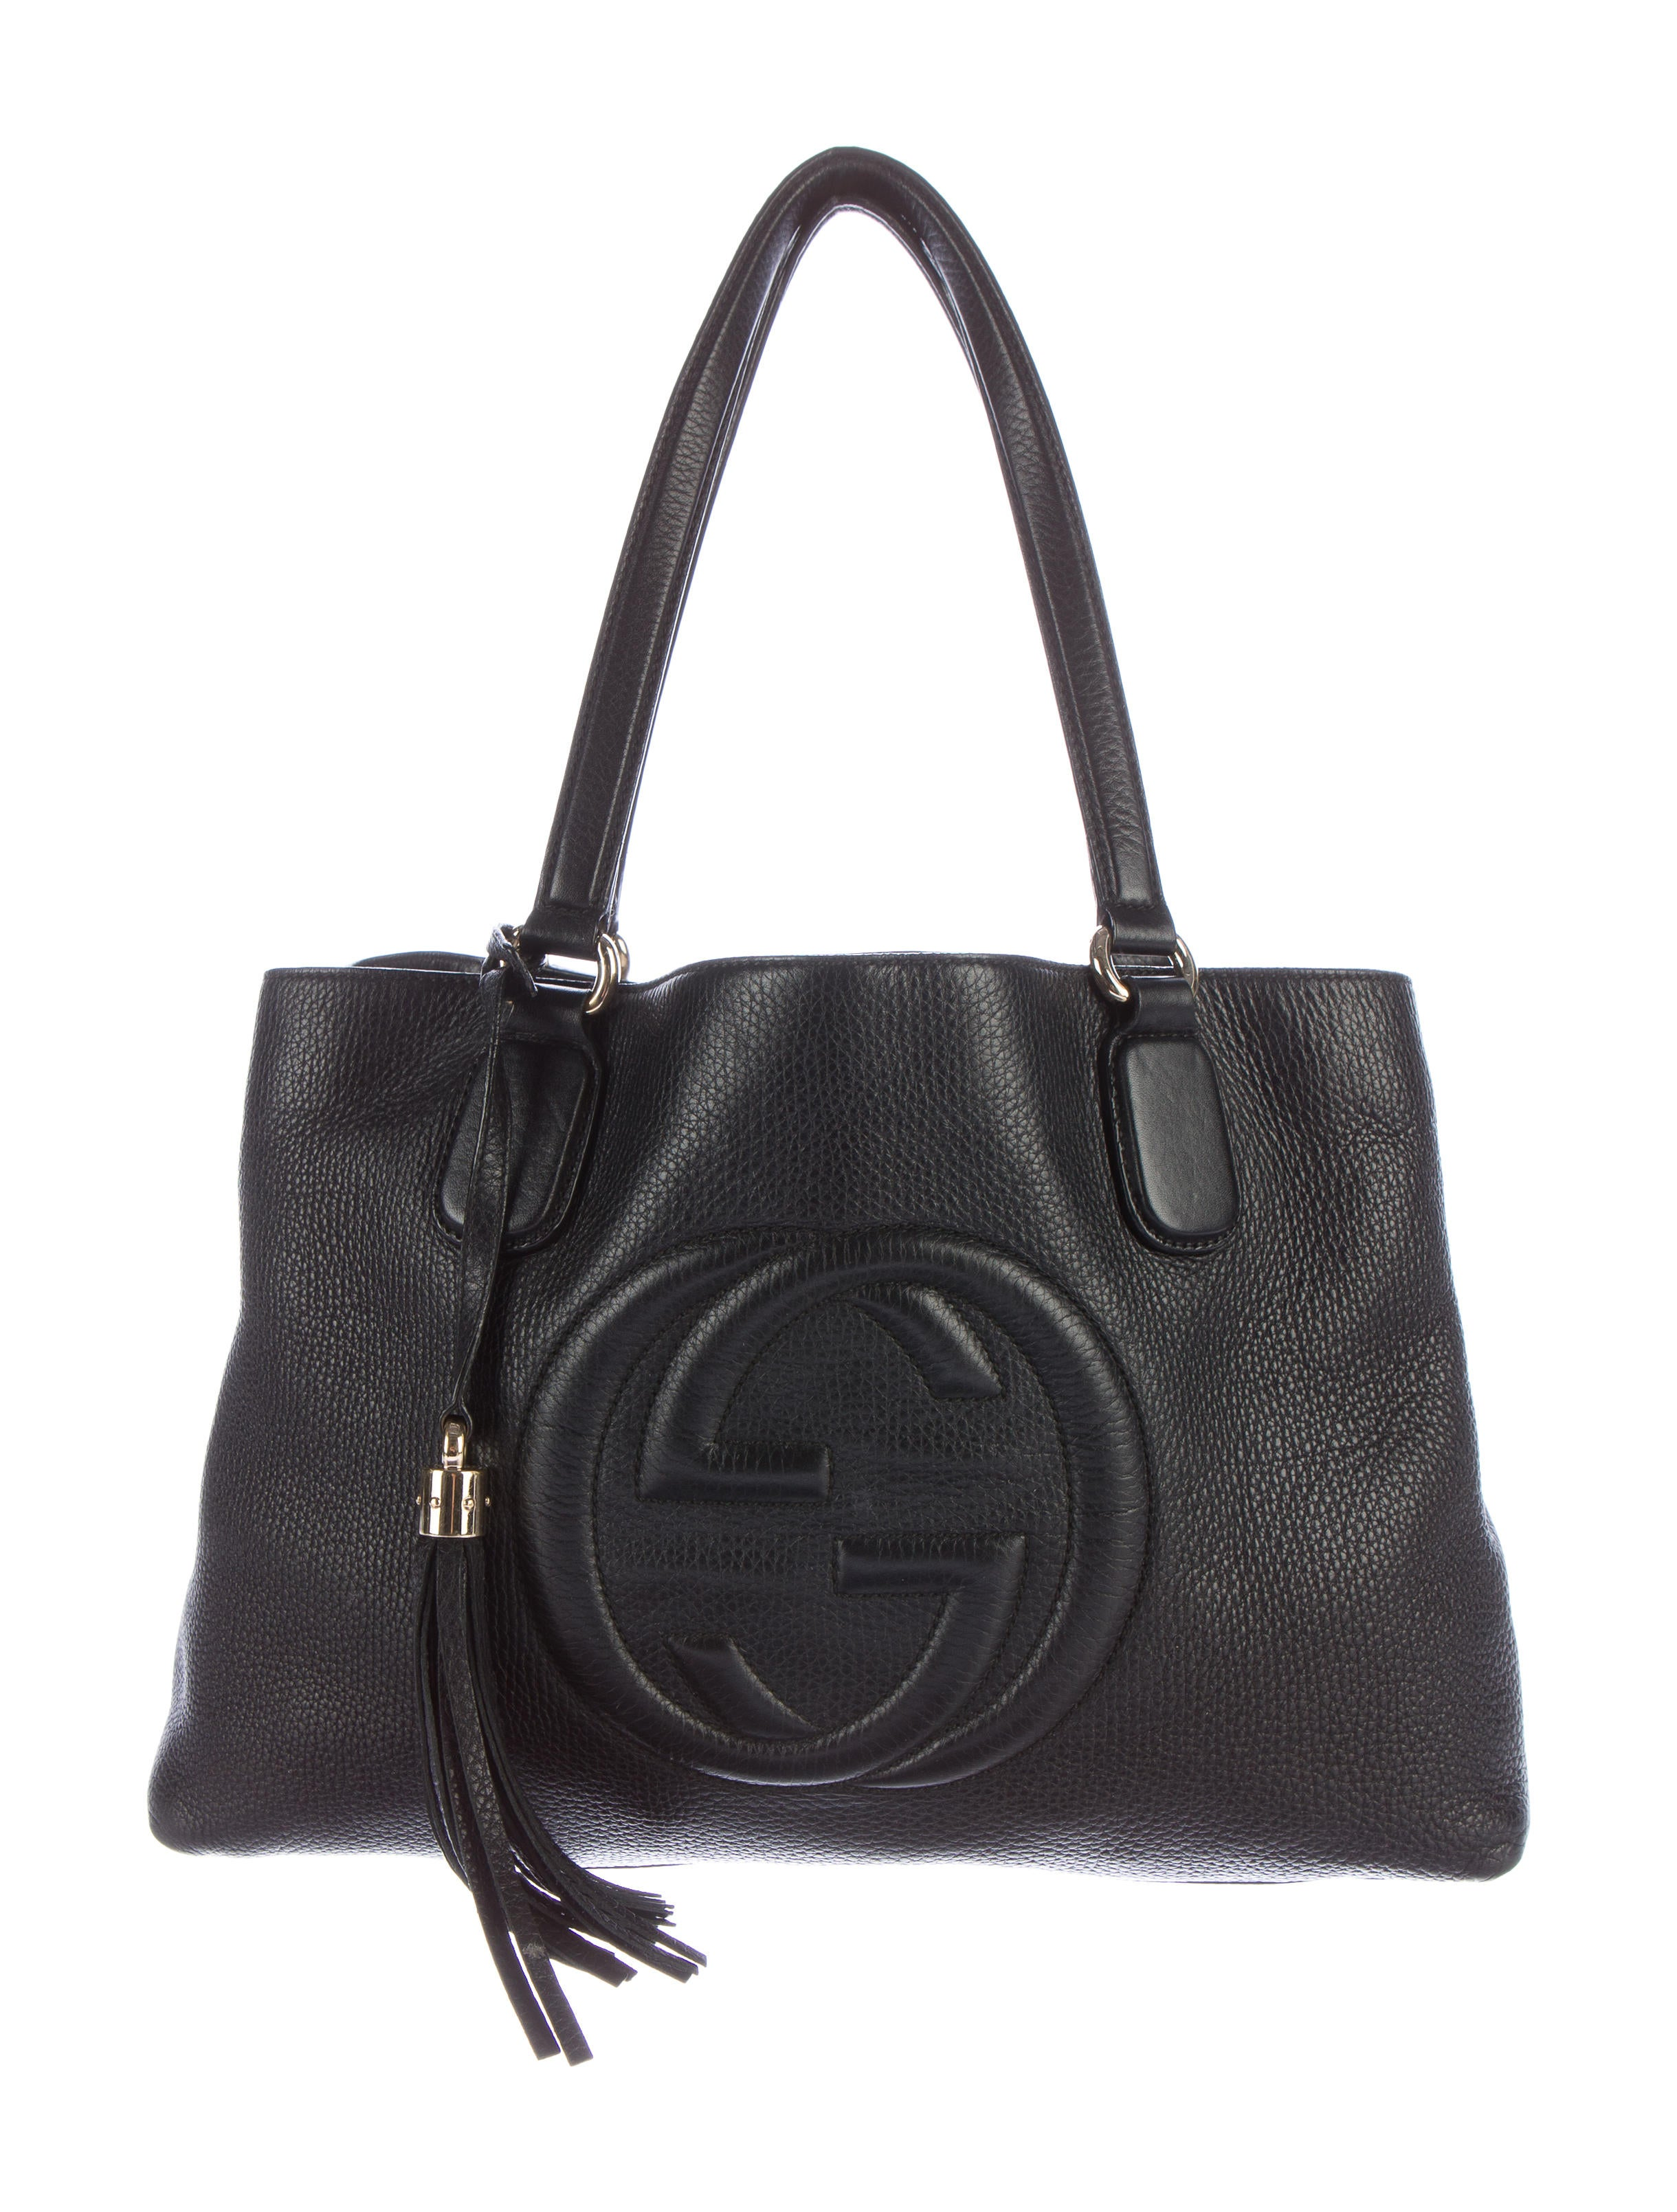 b2bd35f9bbe7 Gucci Soho Bag Tote | Stanford Center for Opportunity Policy in ...